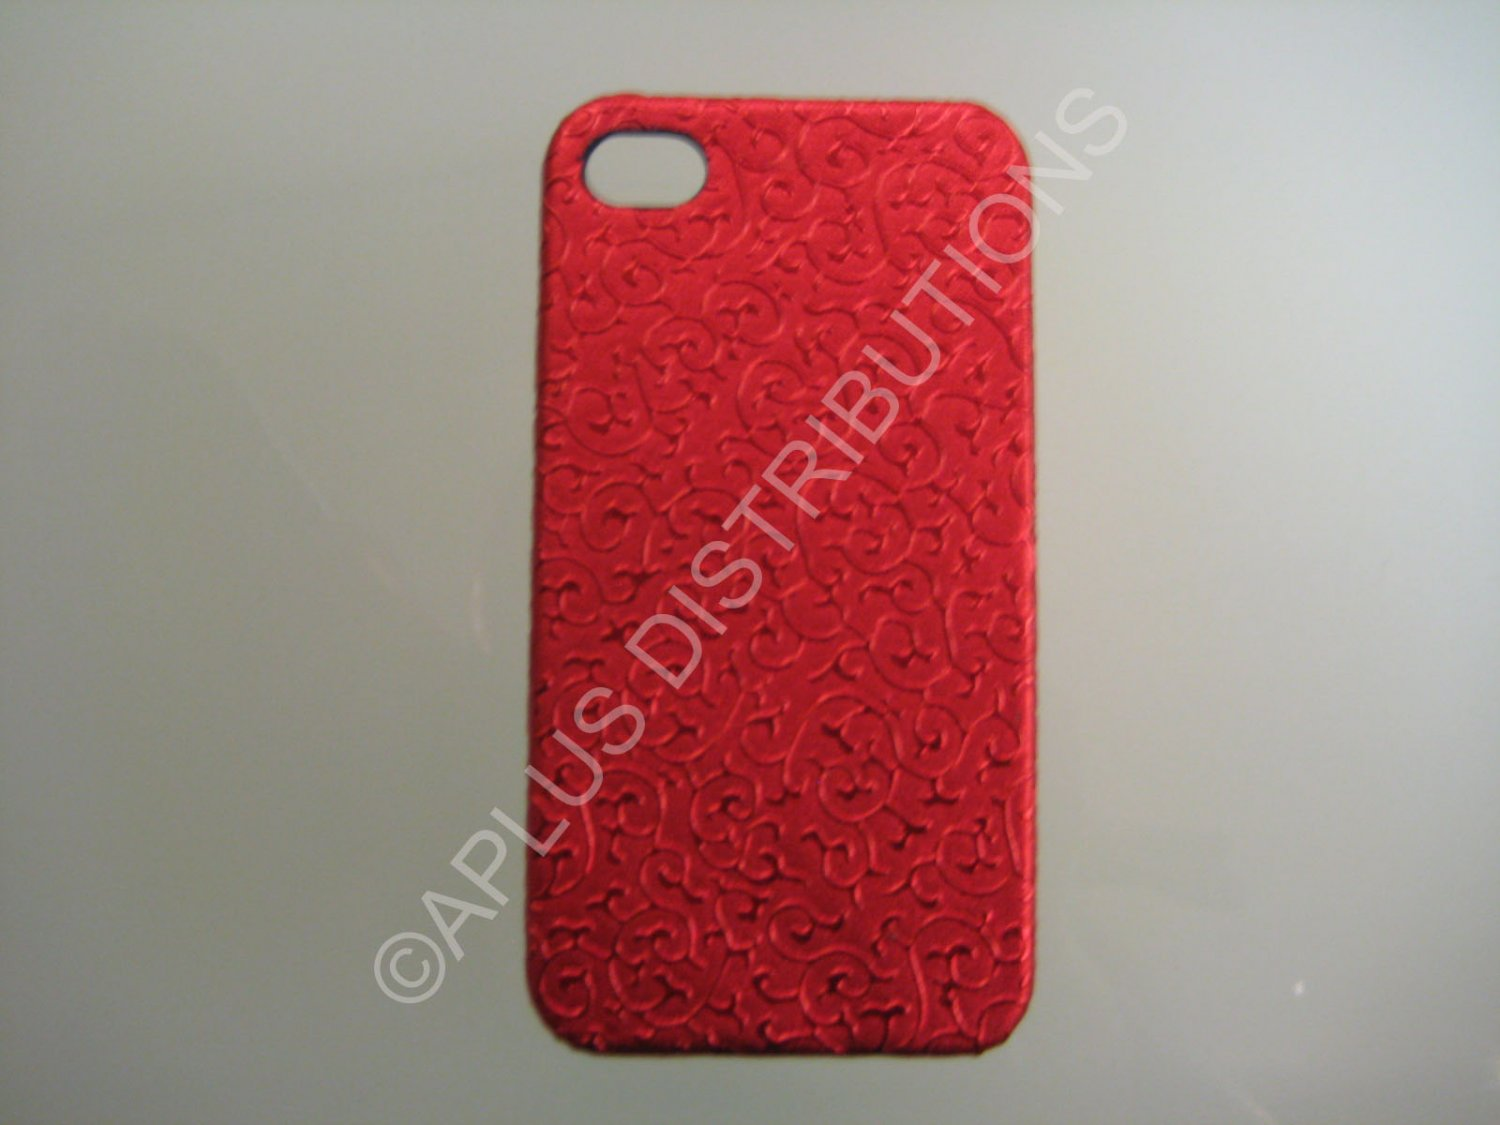 New Red Ornate Vines Design Hard Protective Cover For iPhone 4 - (0086)